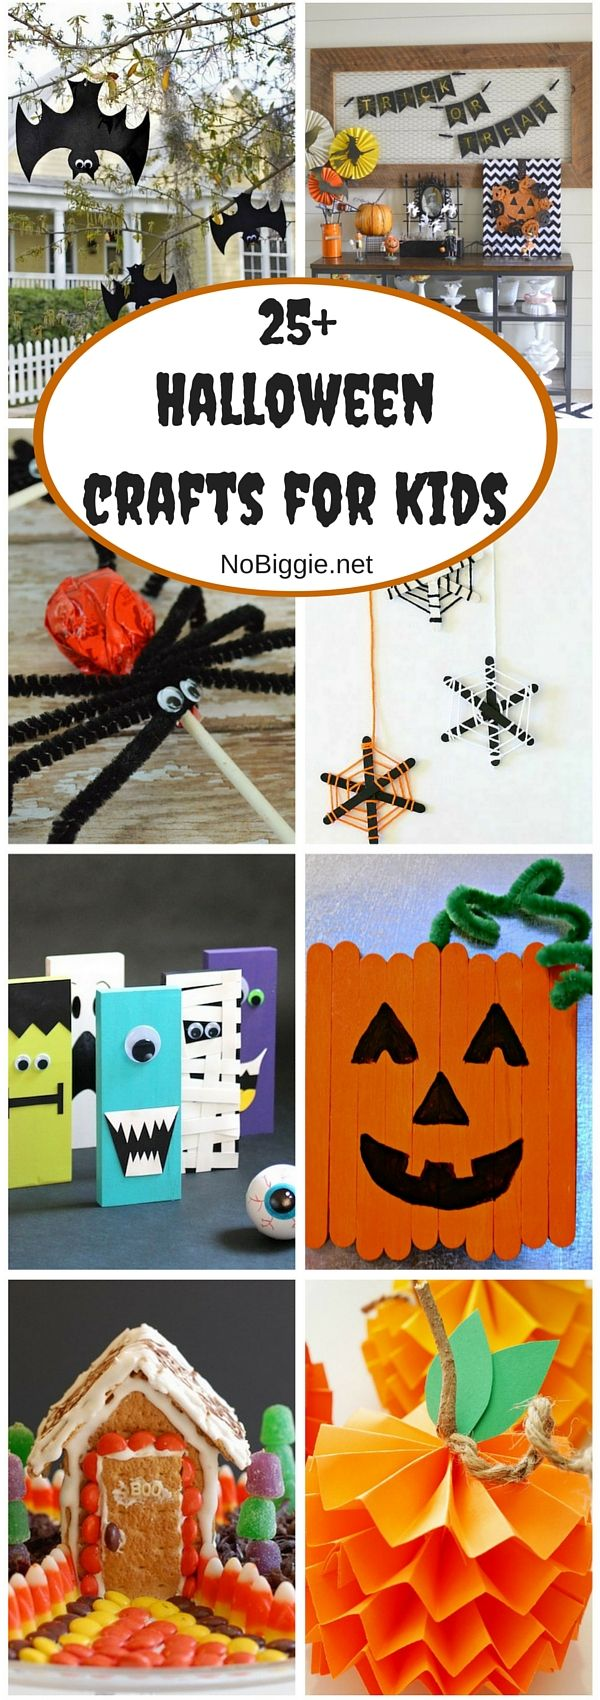 25 halloween crafts for kids - Toddler Halloween Craft Ideas